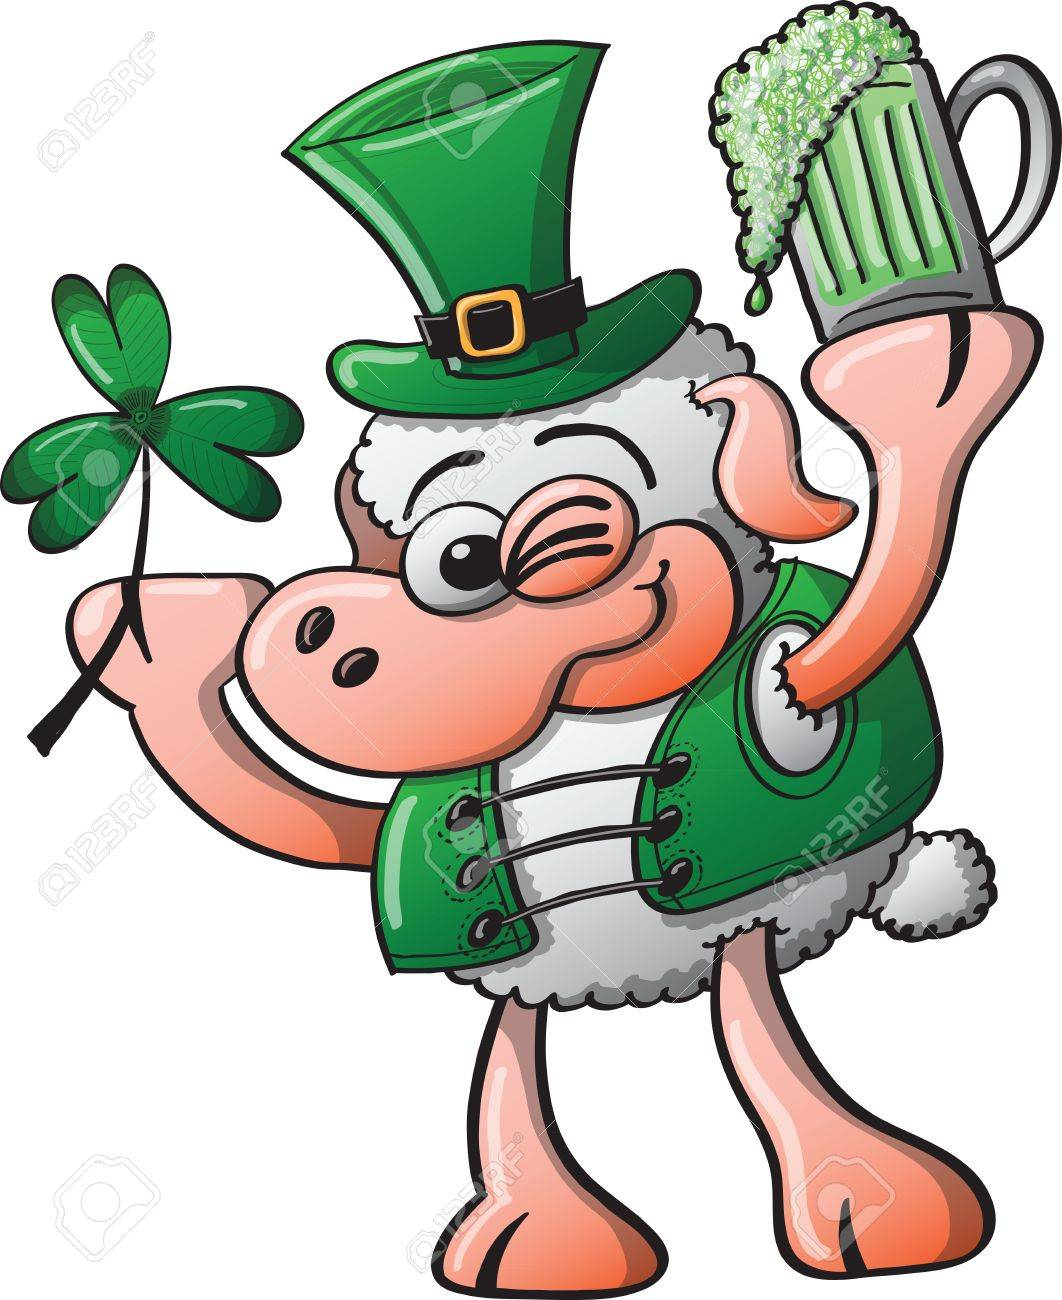 St Patrick s Day Sheep winking, smiling and holding a clover and a glass of beer Stock Vector - 19933380